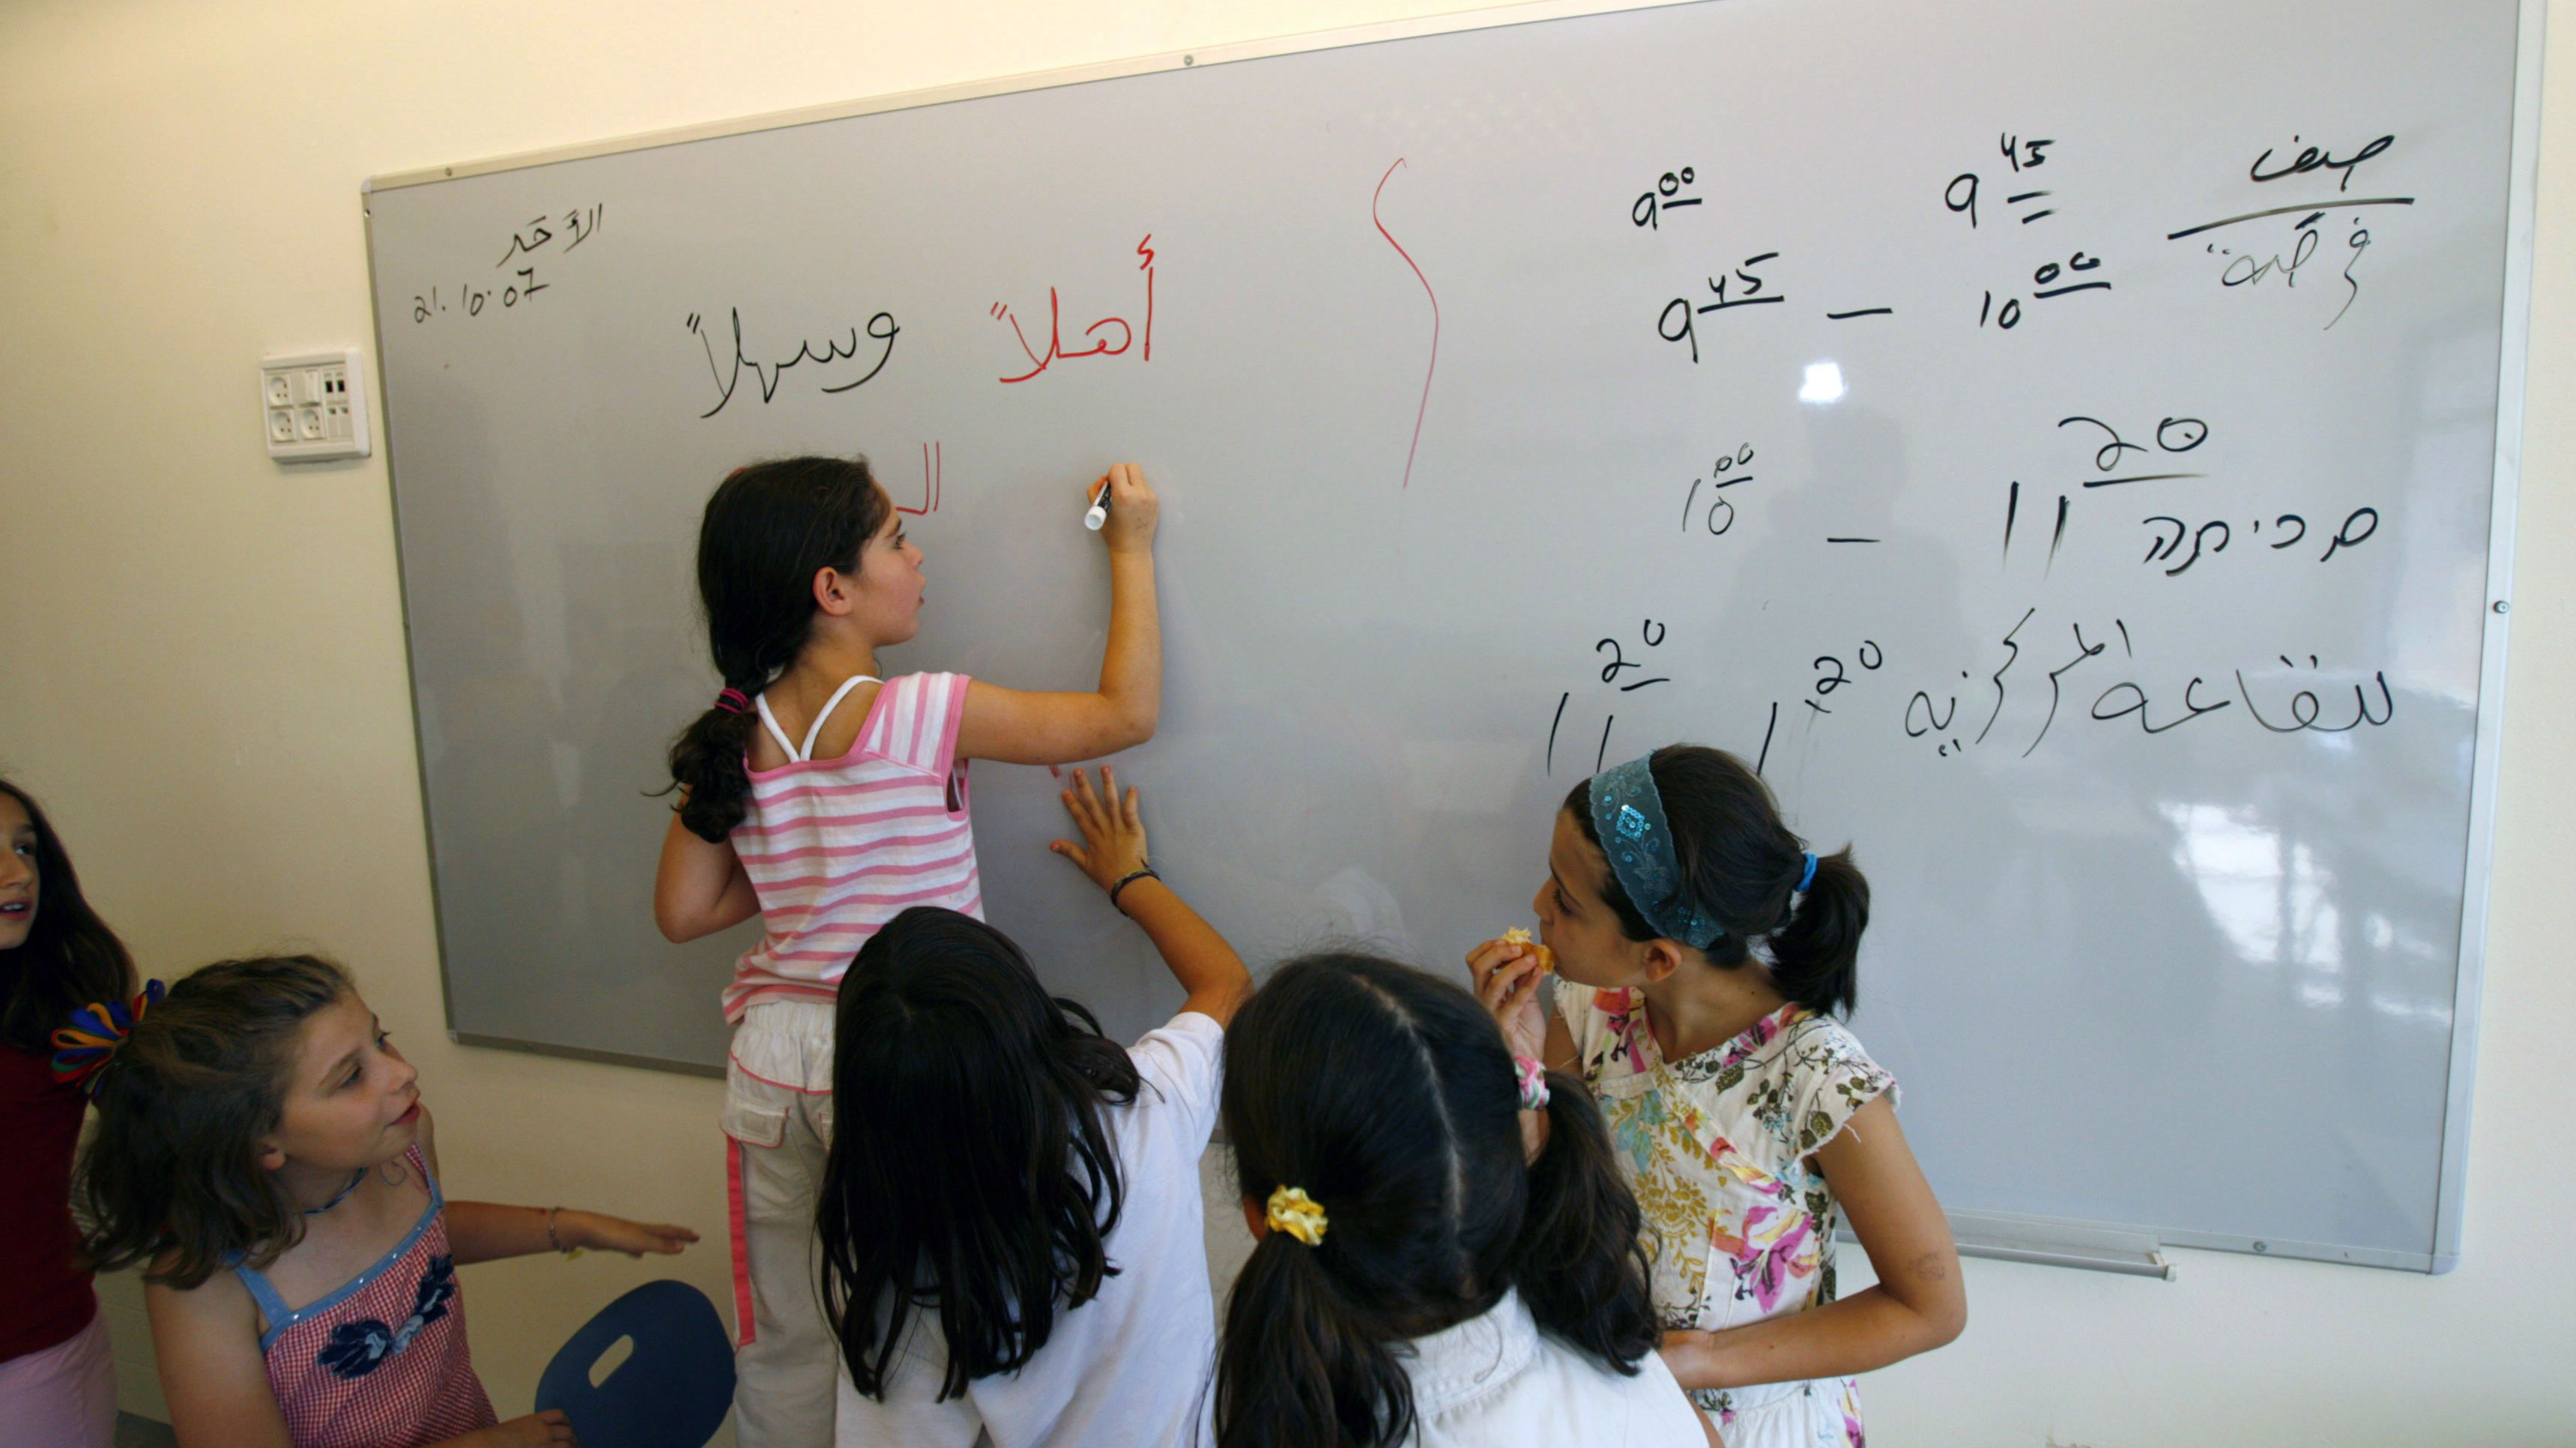 Jewish and Arab fourth graders stand near the board at the first Bilingual School in Jerusalem October 21, 2007. REUTERS/Ronen Zvulun (JERUSALEM)